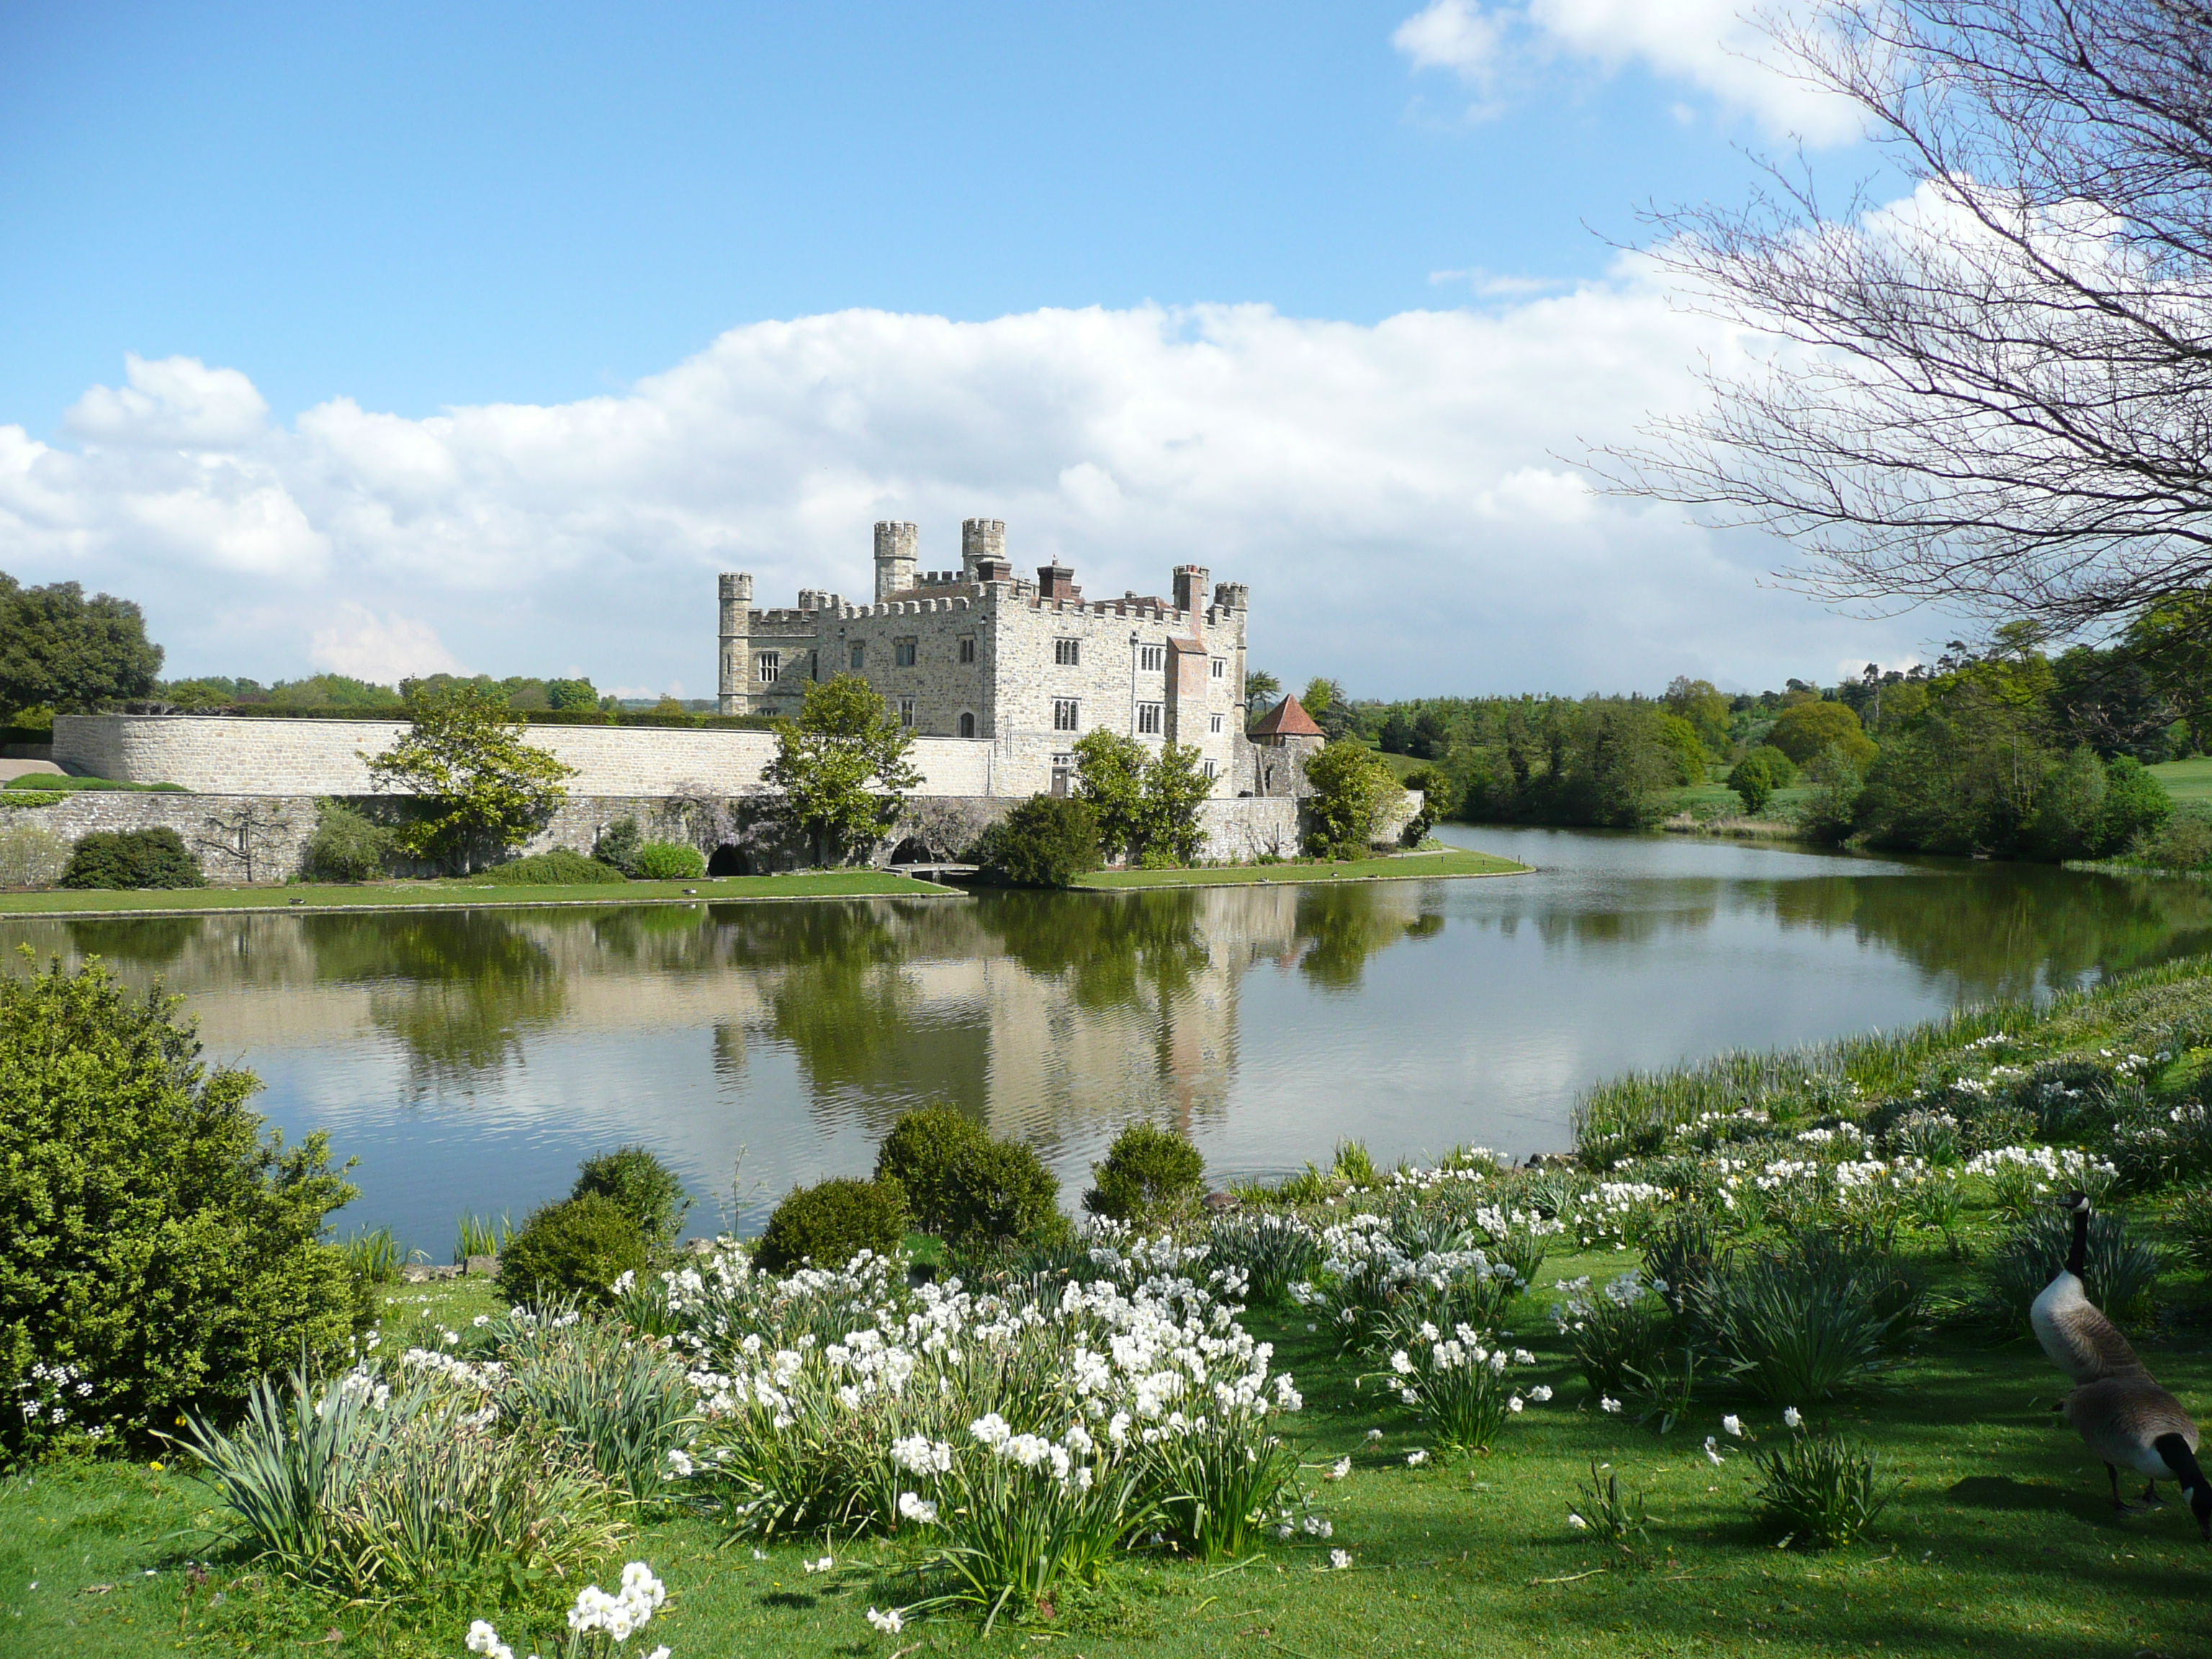 Photo of Leeds Castle in the background and the large mote surrounding it.